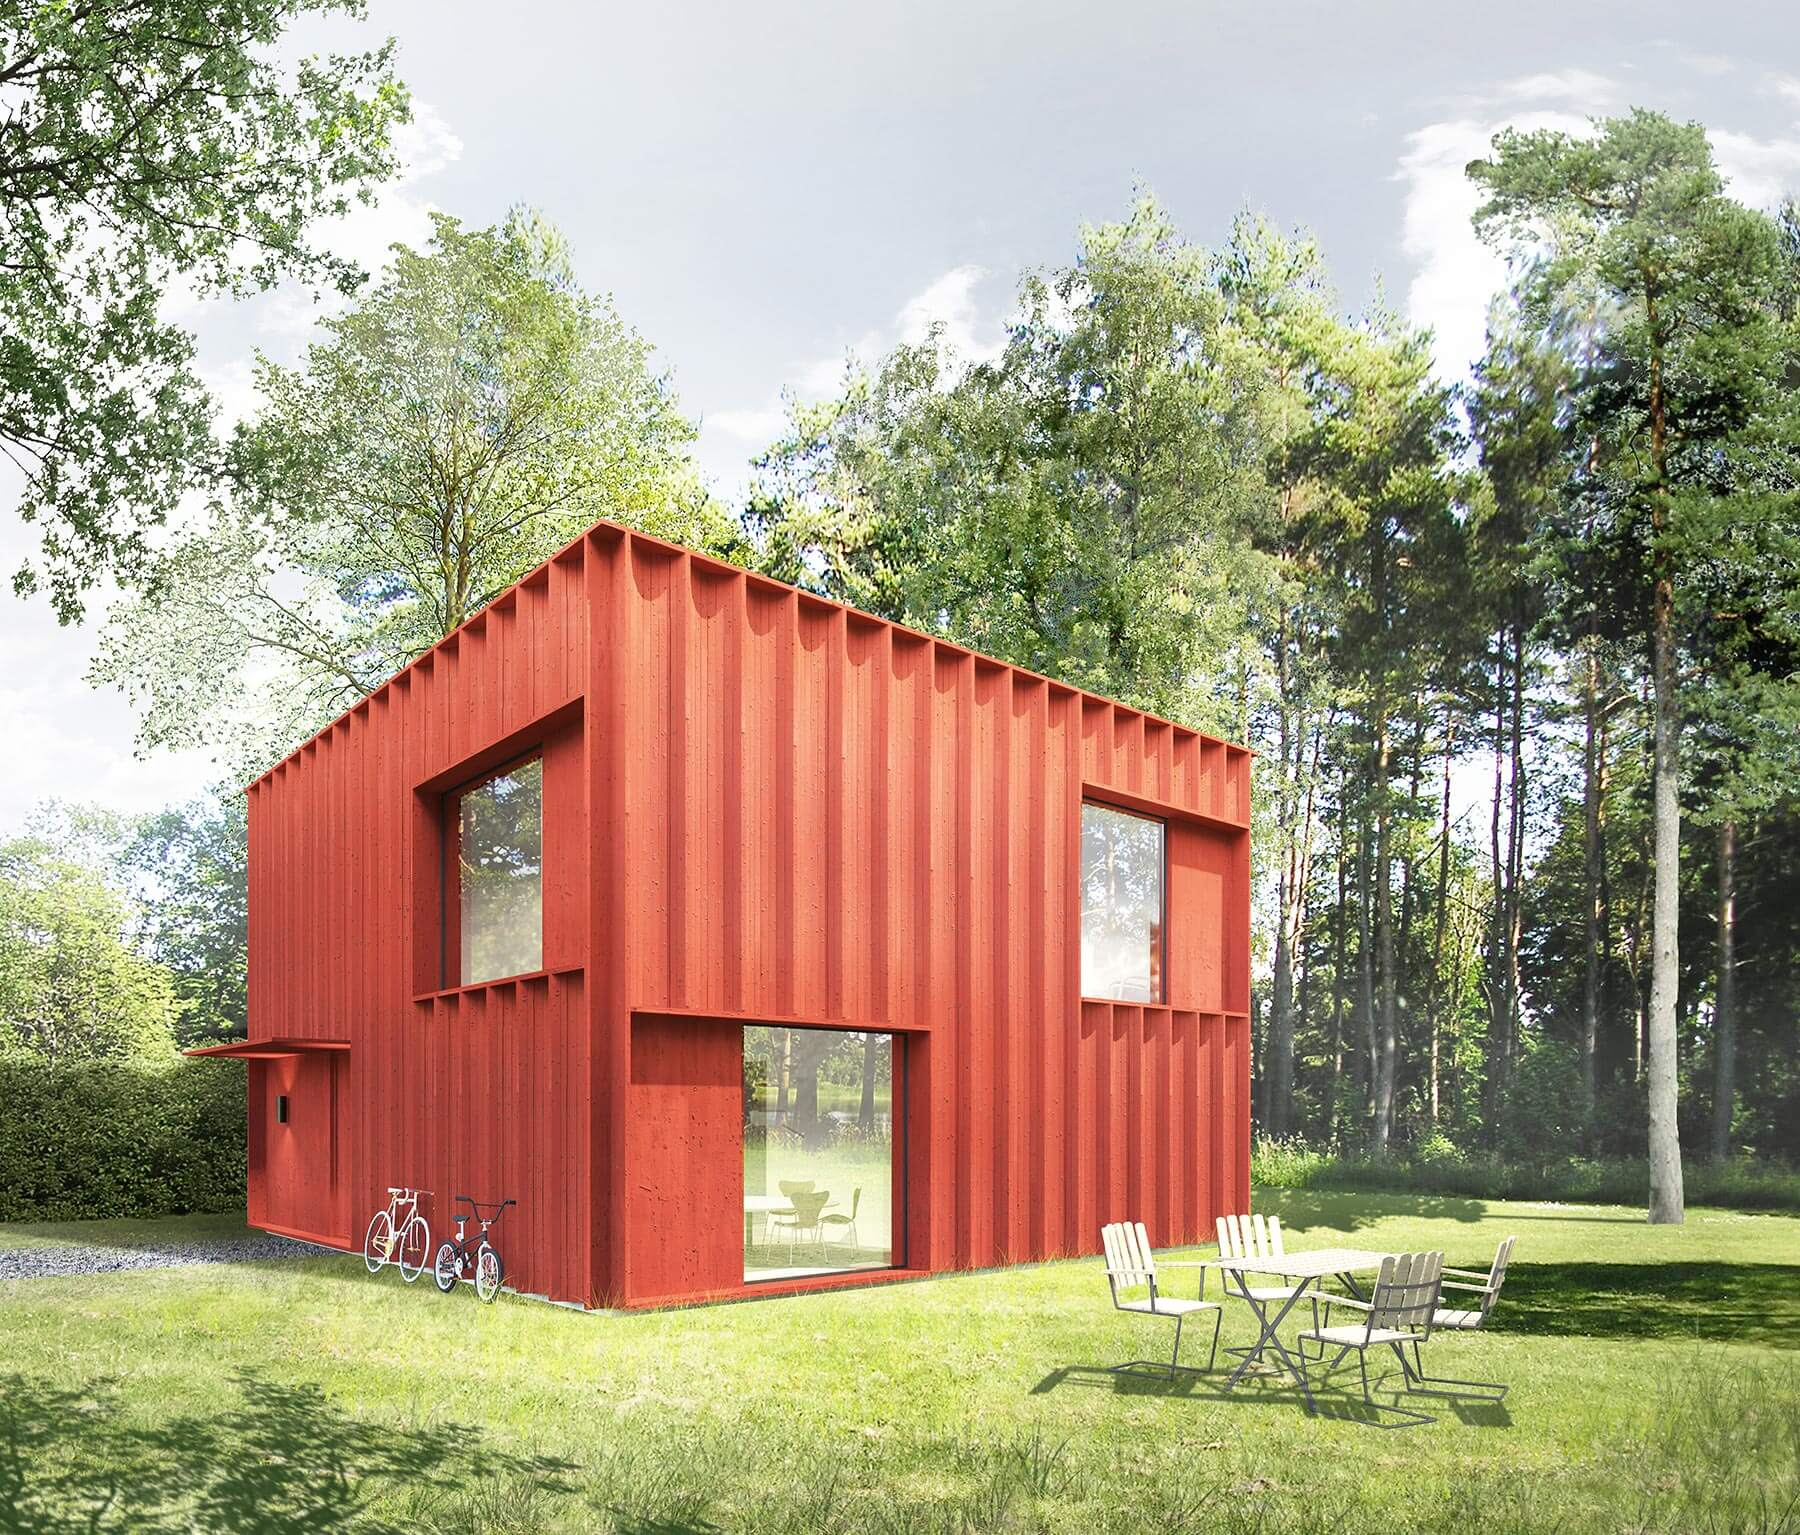 Modular style small square house design